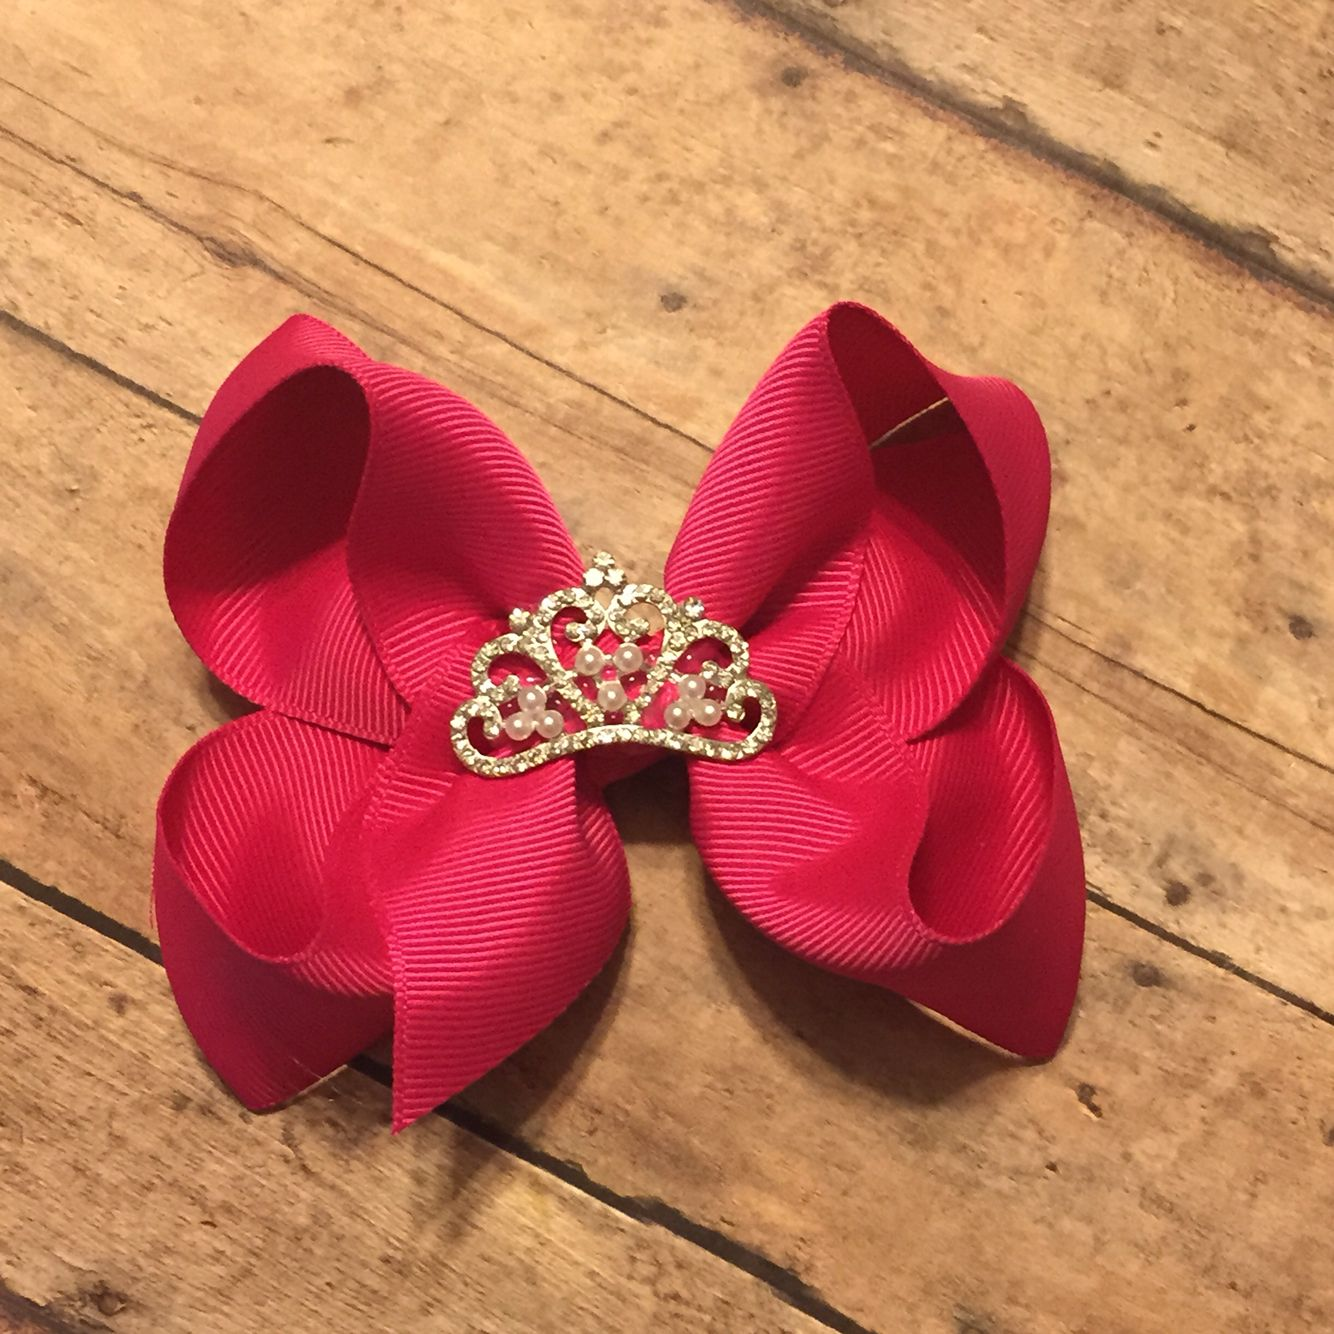 Shocking pink hair bow with crown center princess girl